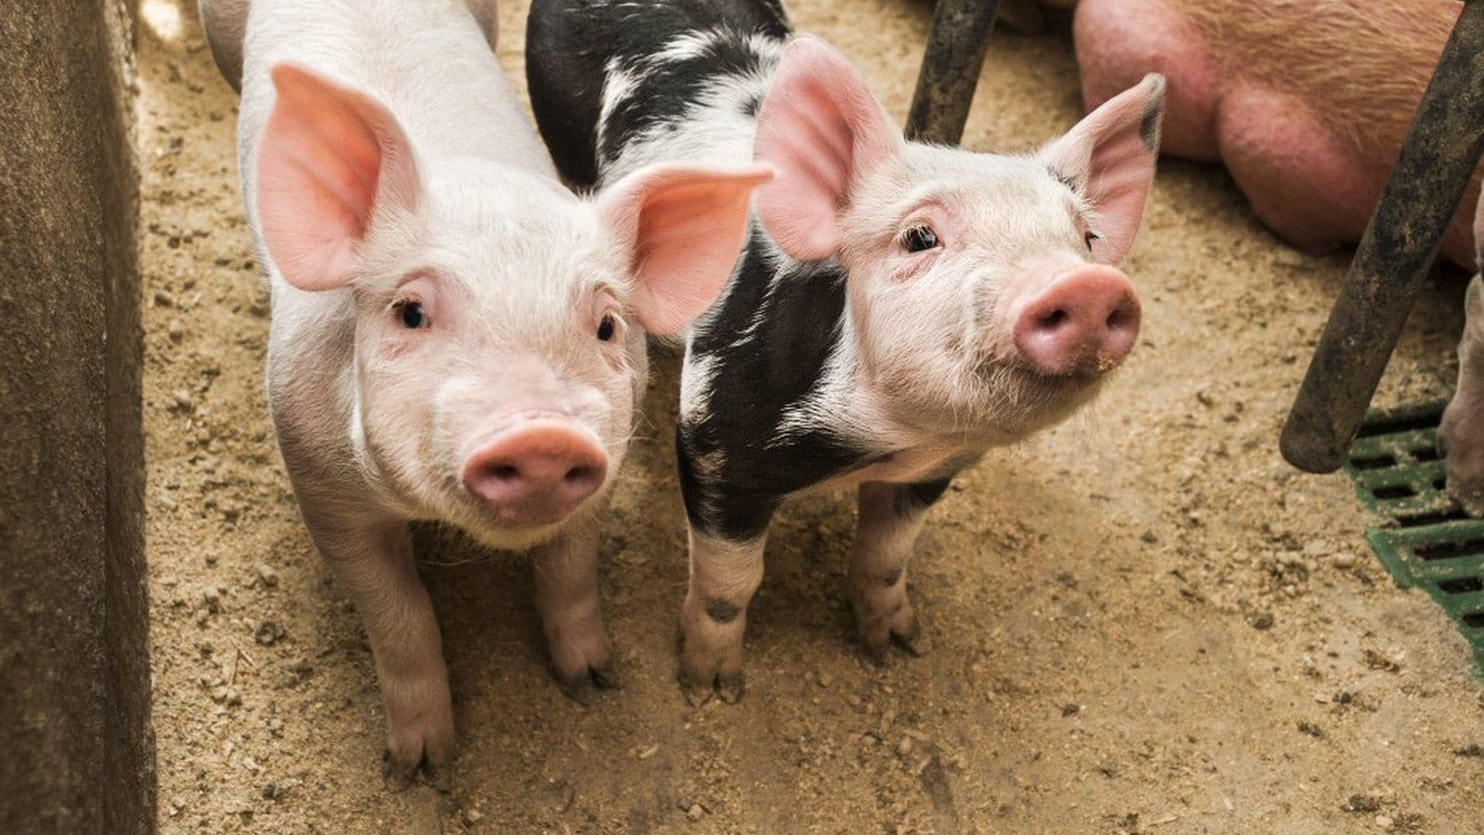 Animal rights activists who removed two piglets from factory farm charged after FBI raids - May 25, 2018The Washington Post